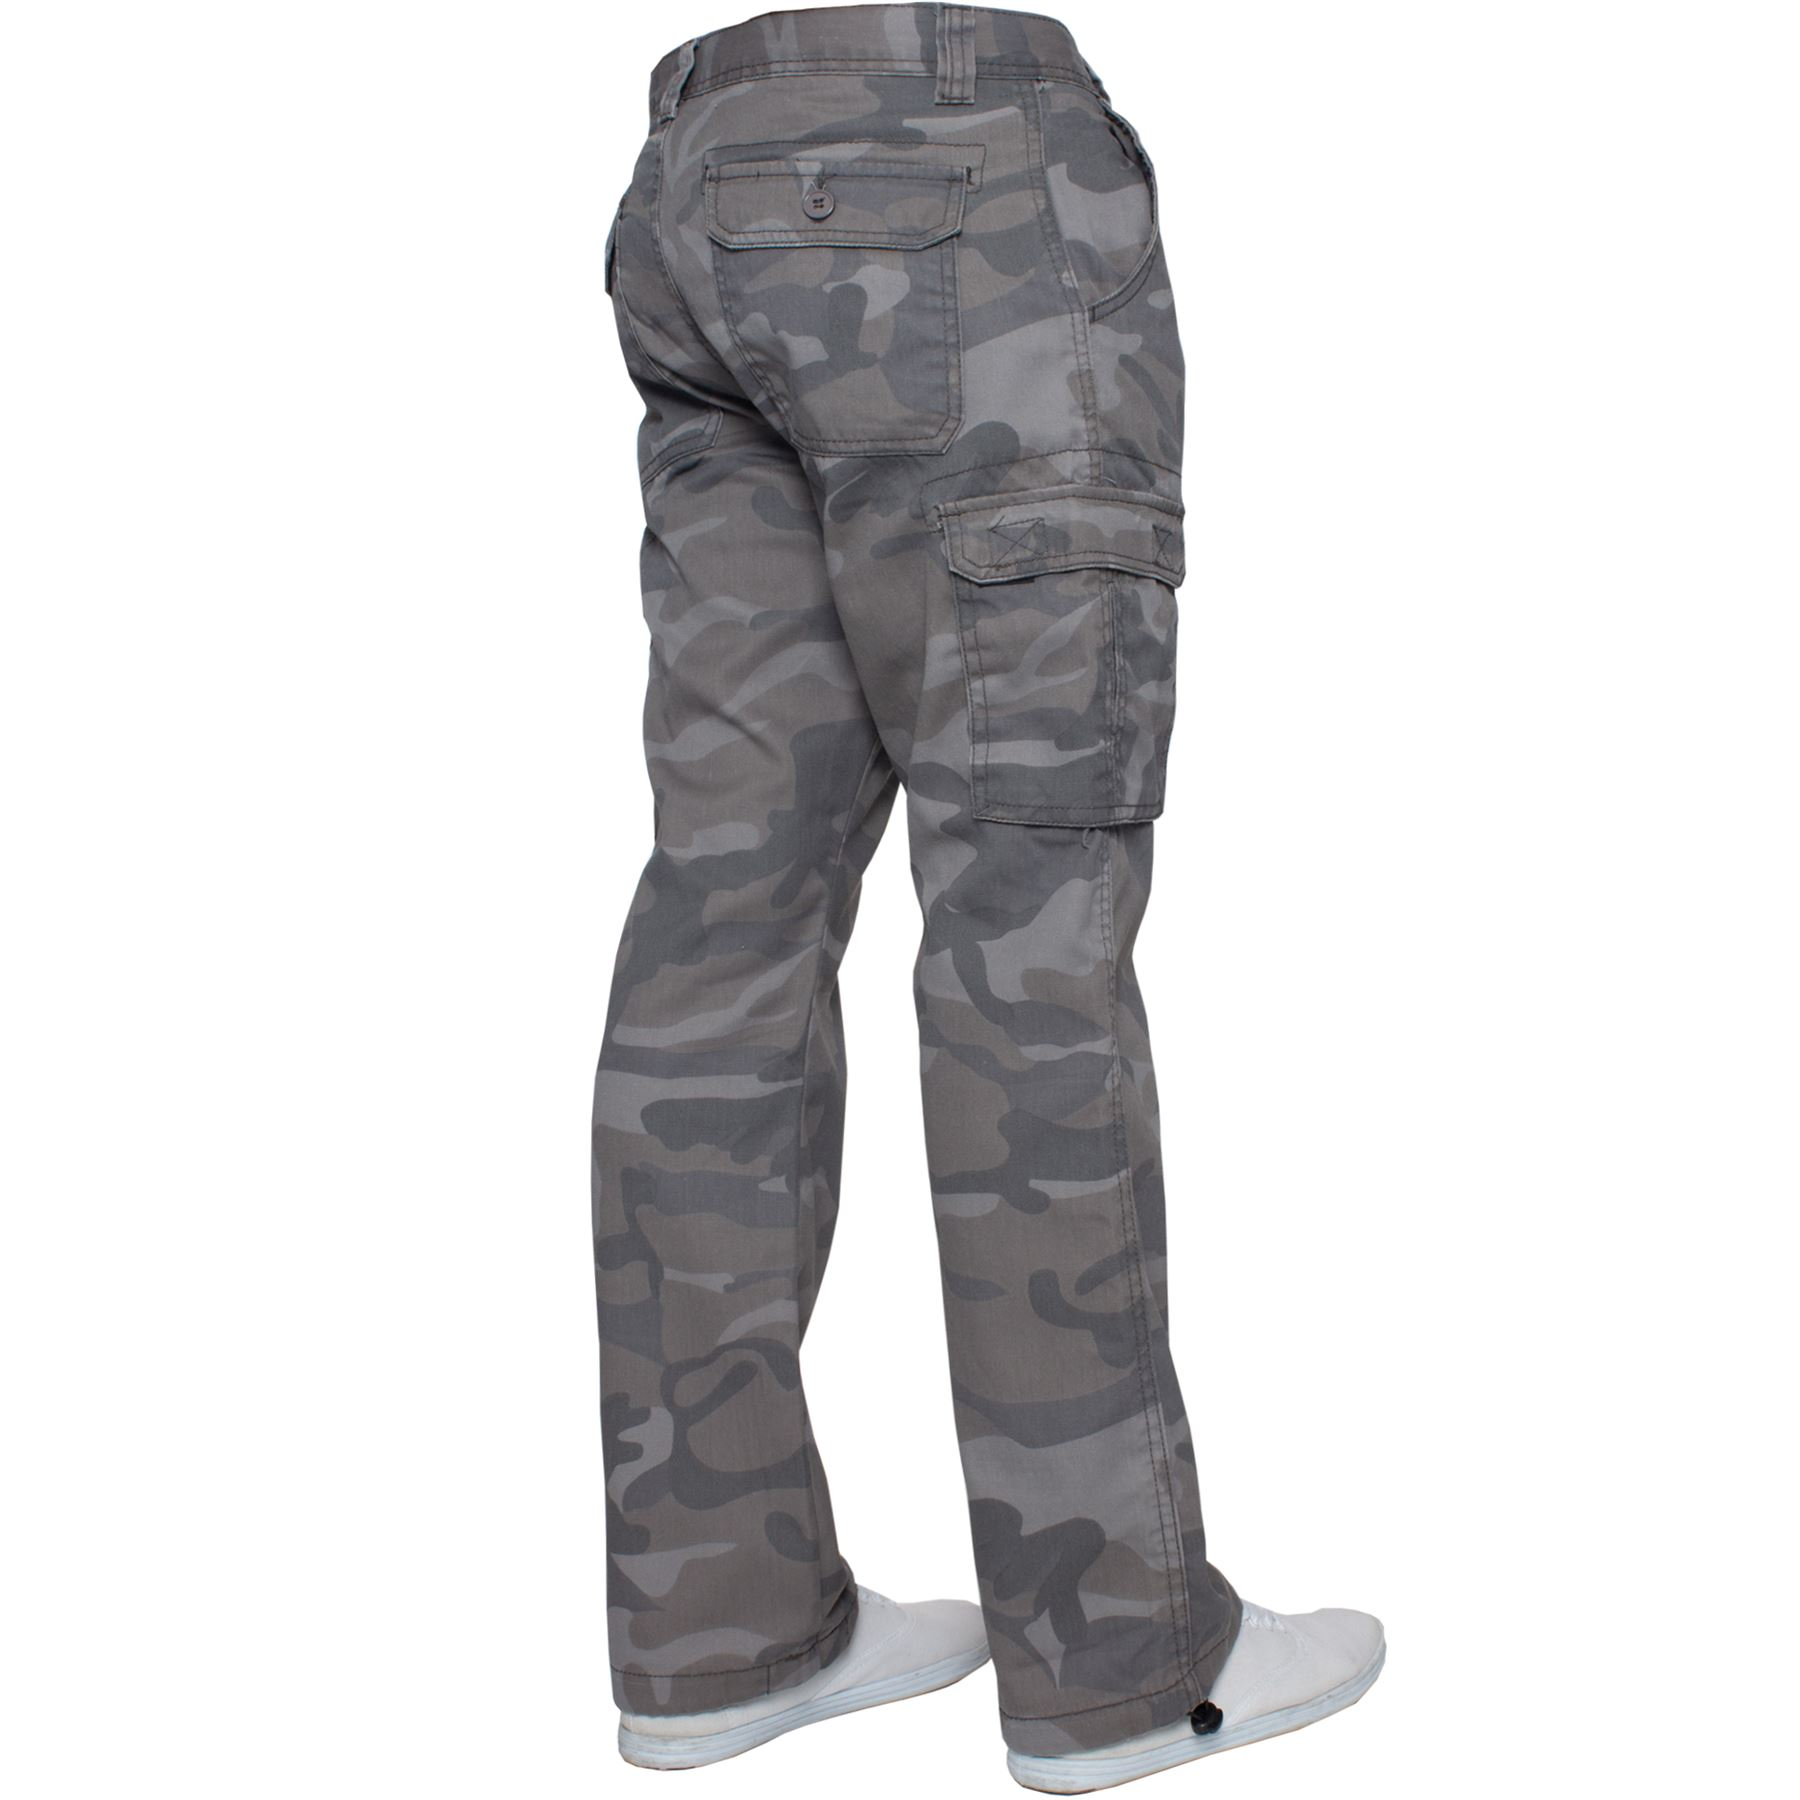 Kruze-Mens-Cargo-Combat-Trousers-Army-Camouflage-Camo-Military-Pants-All-Waists thumbnail 10